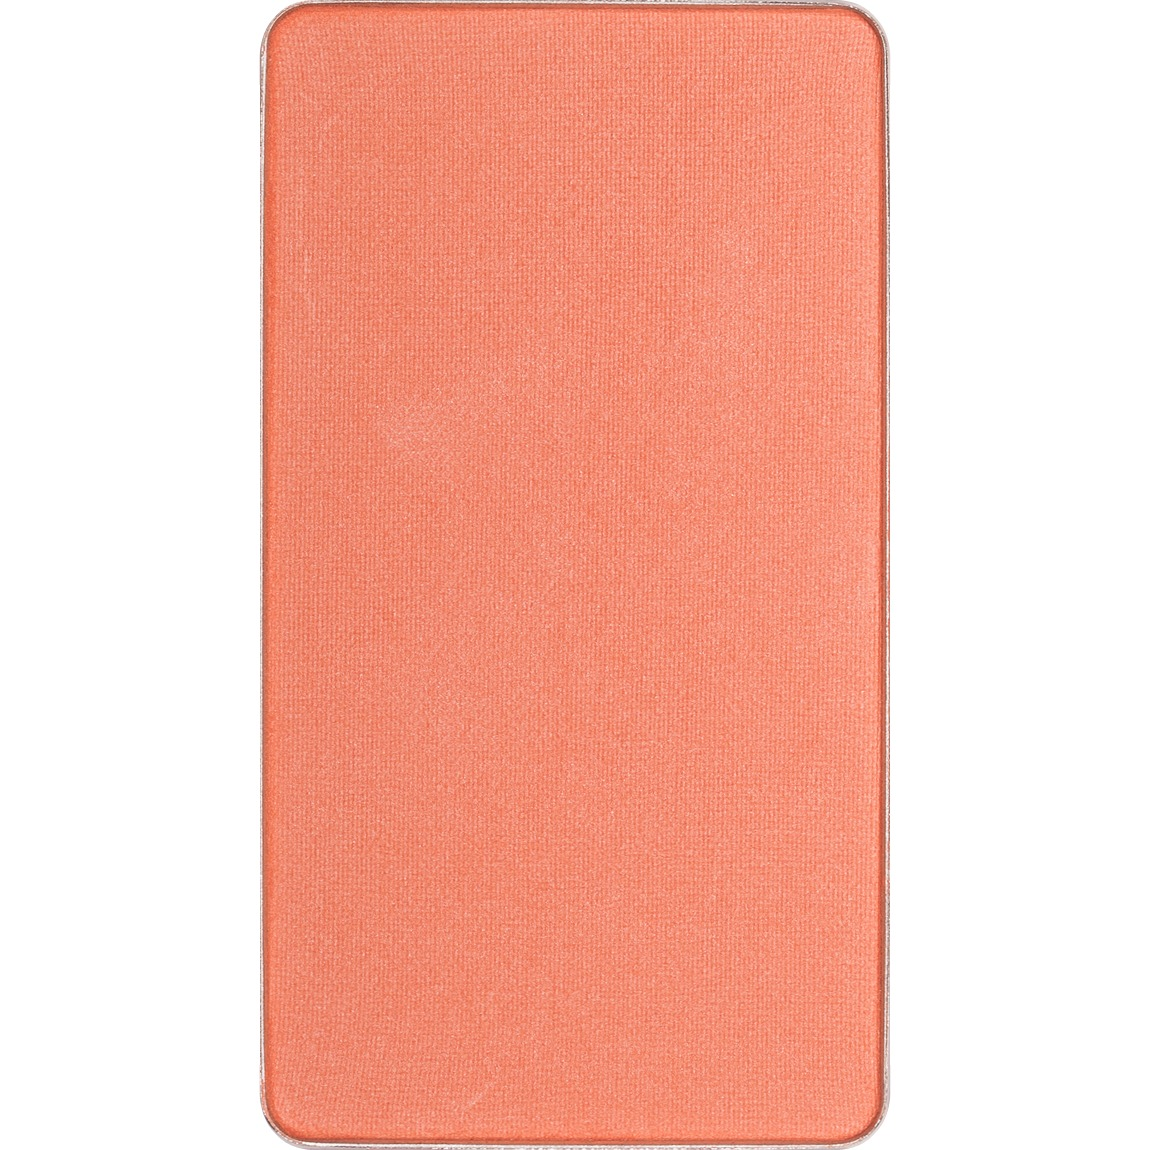 Inglot Cosmetics Freedom System Blush 49 product swatch.